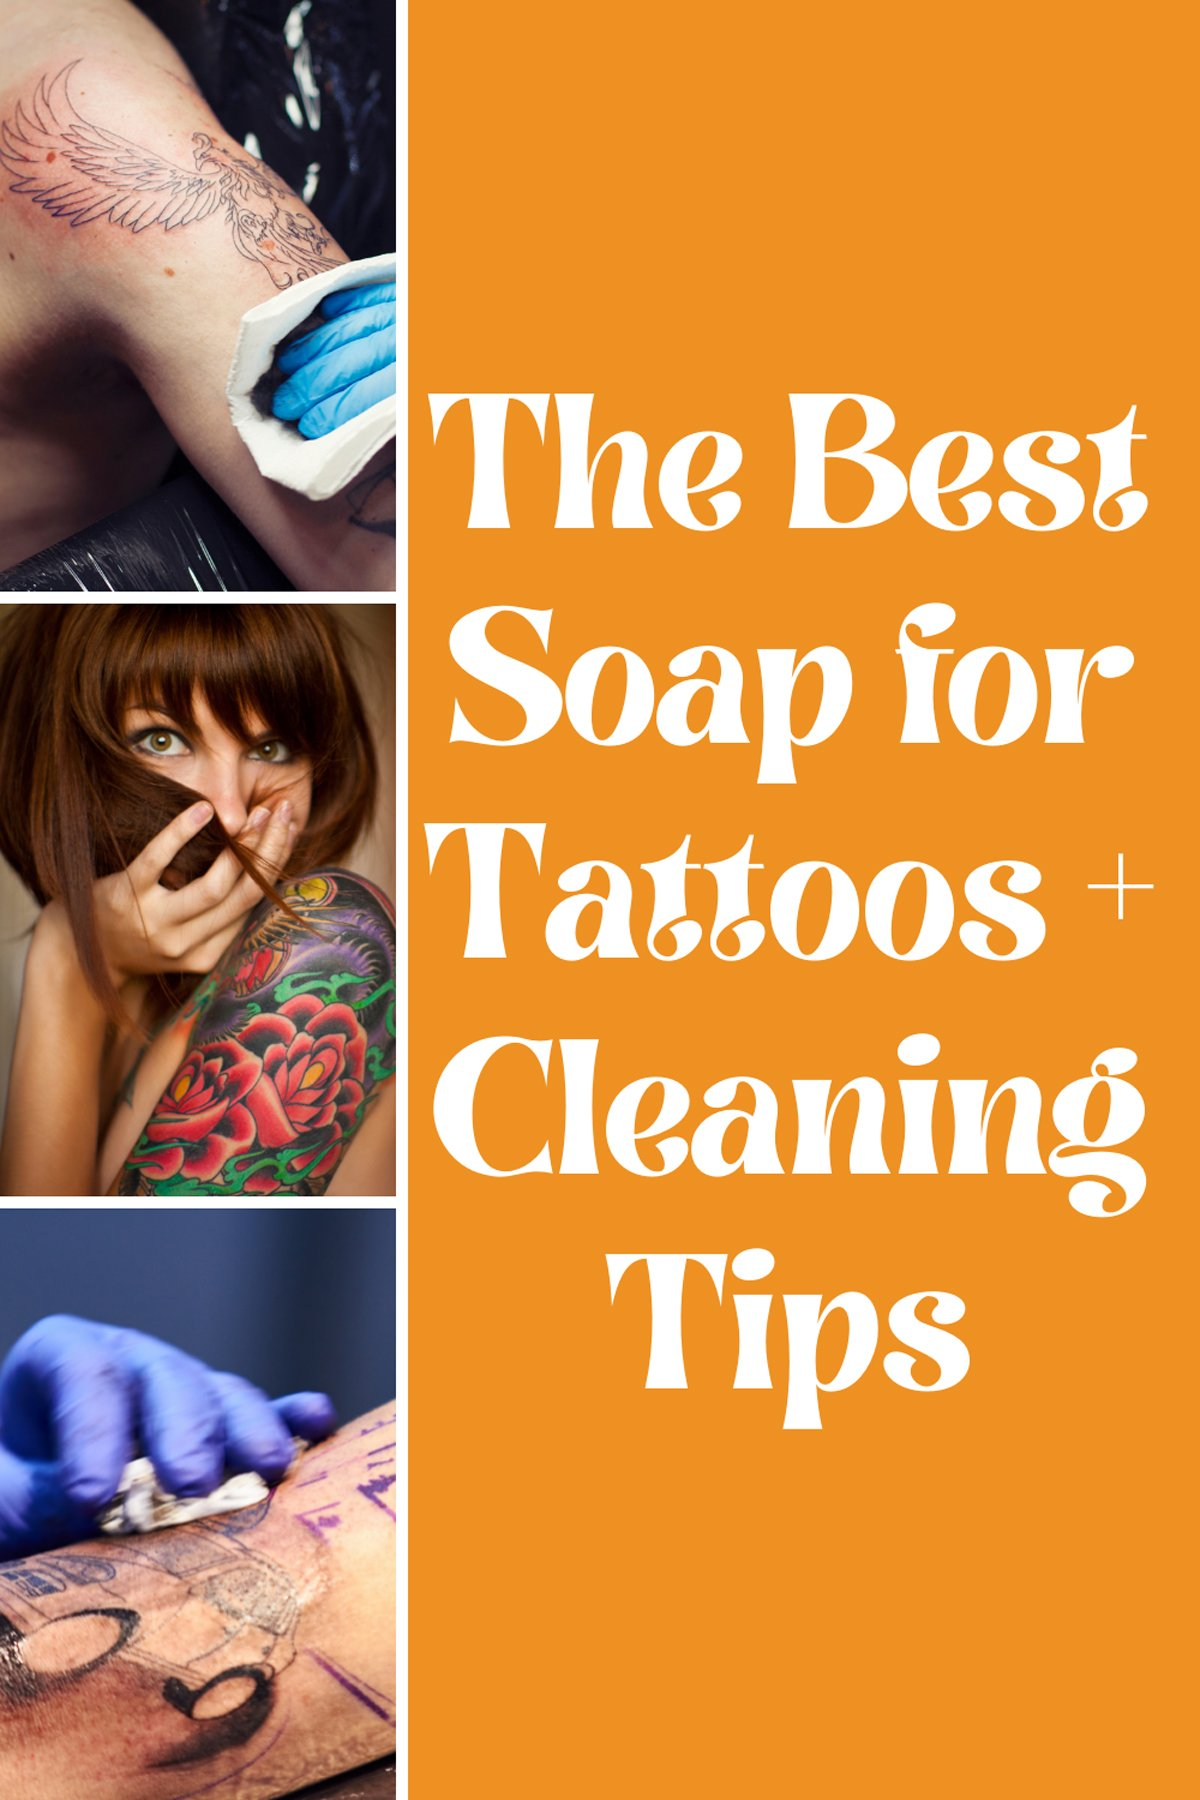 Tattoo Cleaning Tips & which is the best soap to use on new tattoos